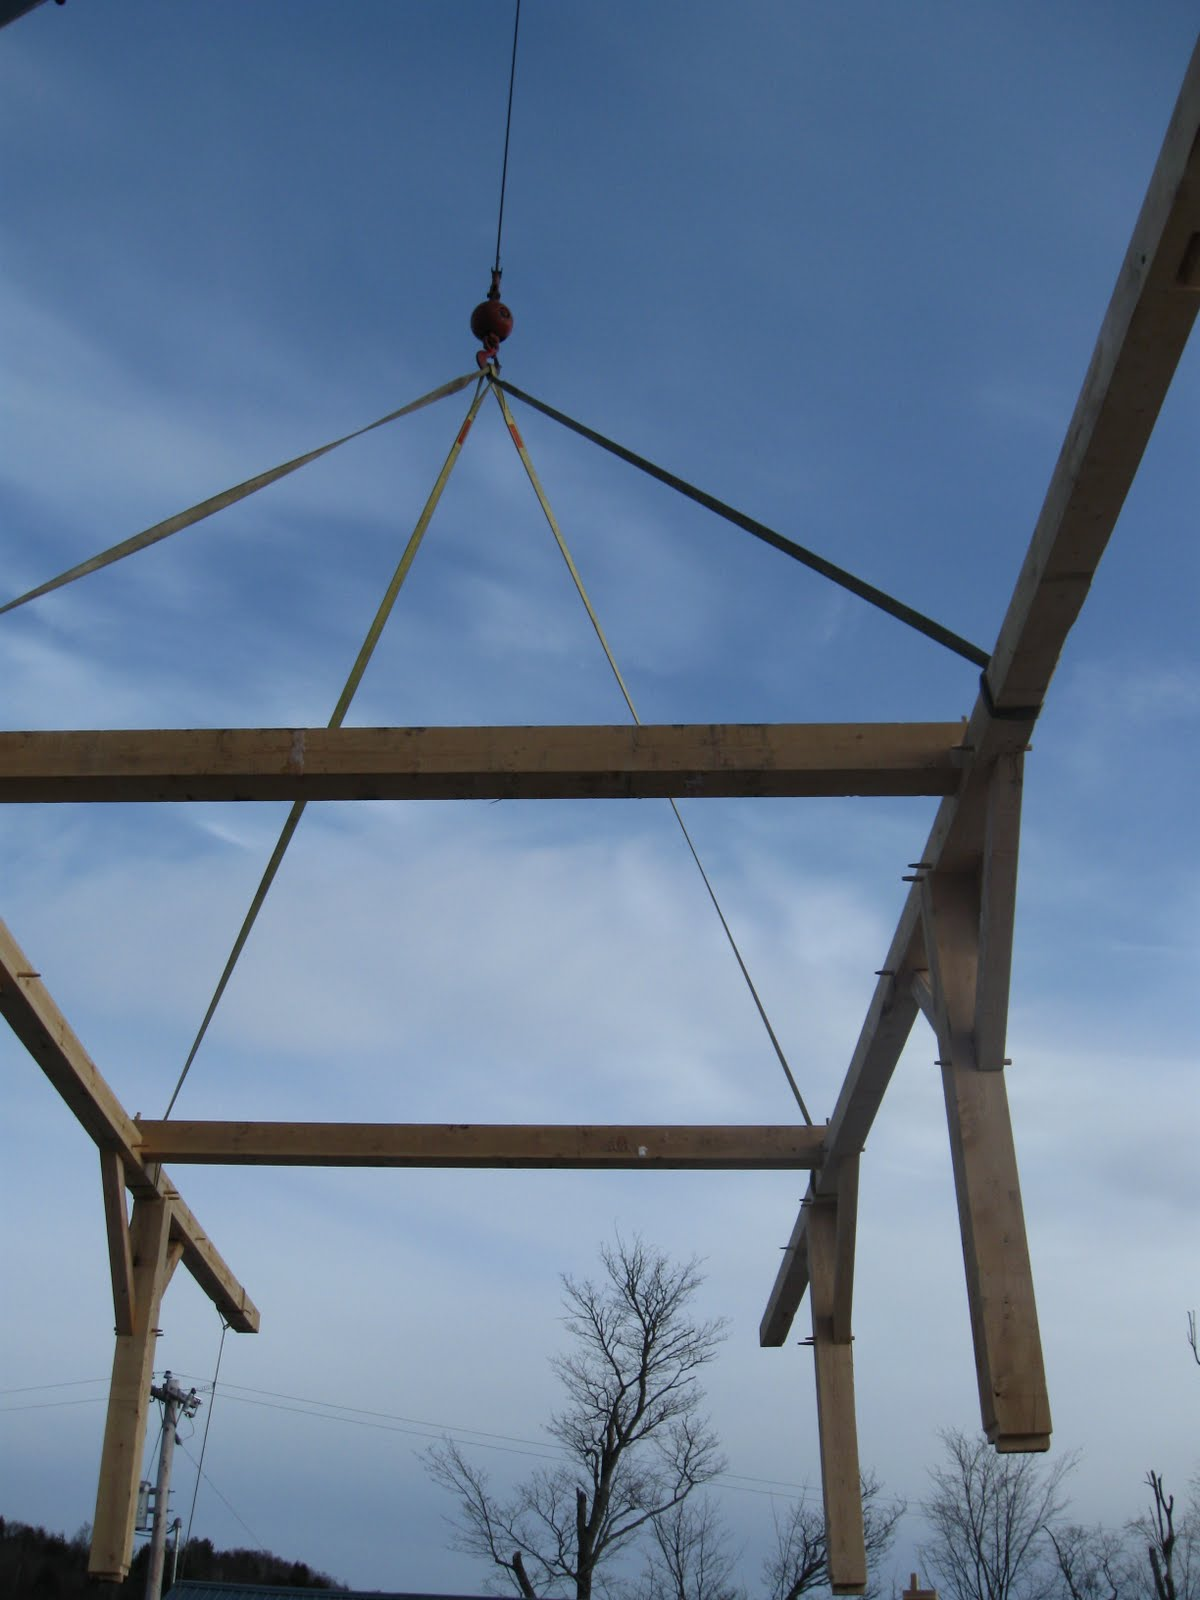 Except for the the gable bents, the purlin system was assembled and flown in as a unit.